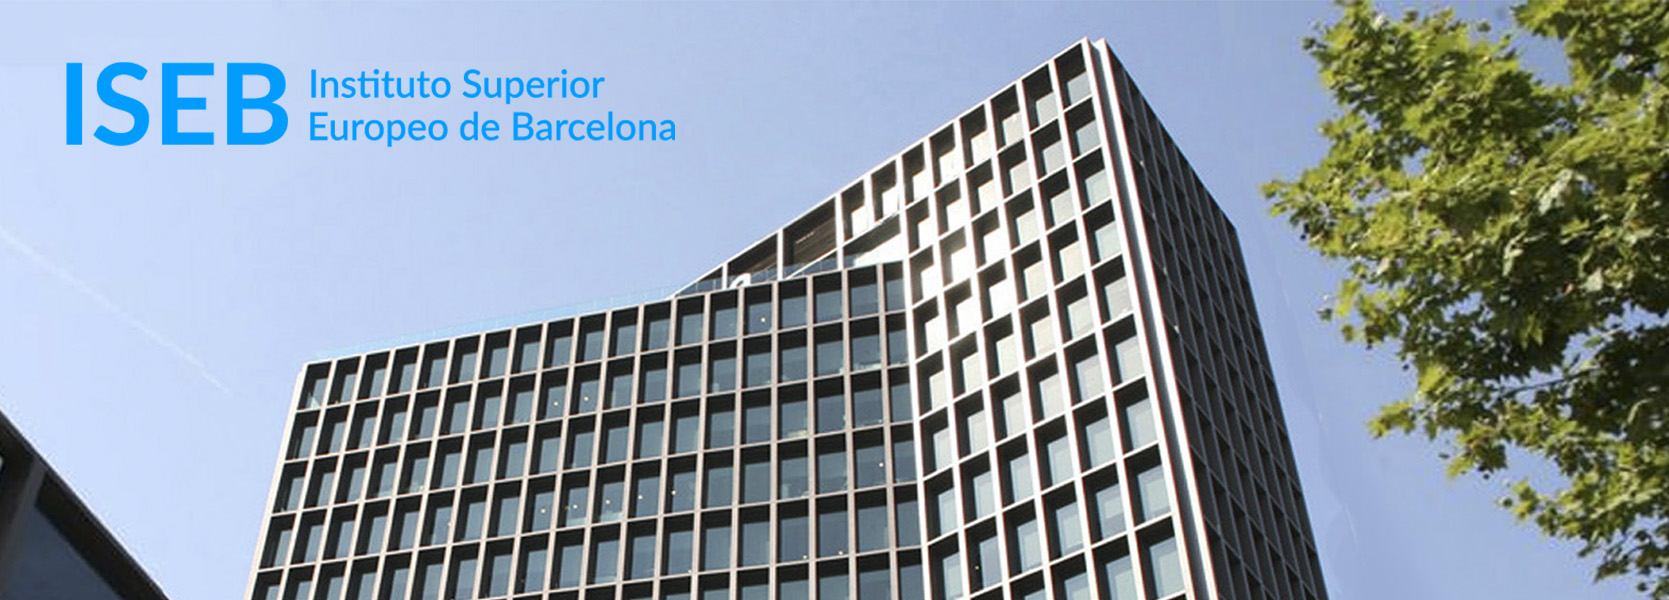 ISEB - Instituto Superior Europeo de Barcelona